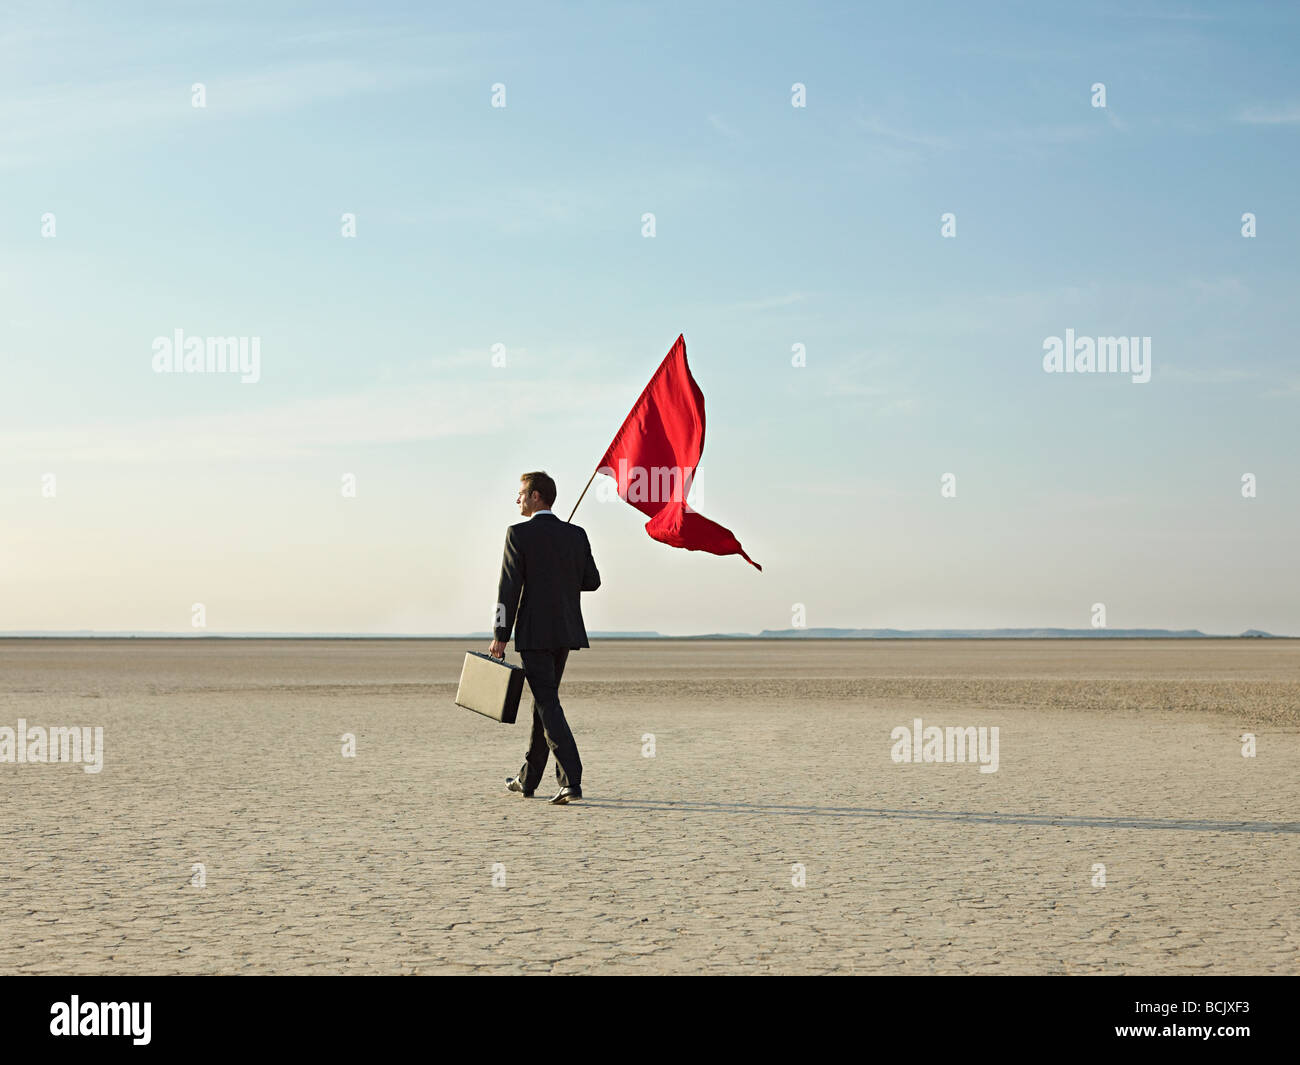 Businessman holding a red flag - Stock Image